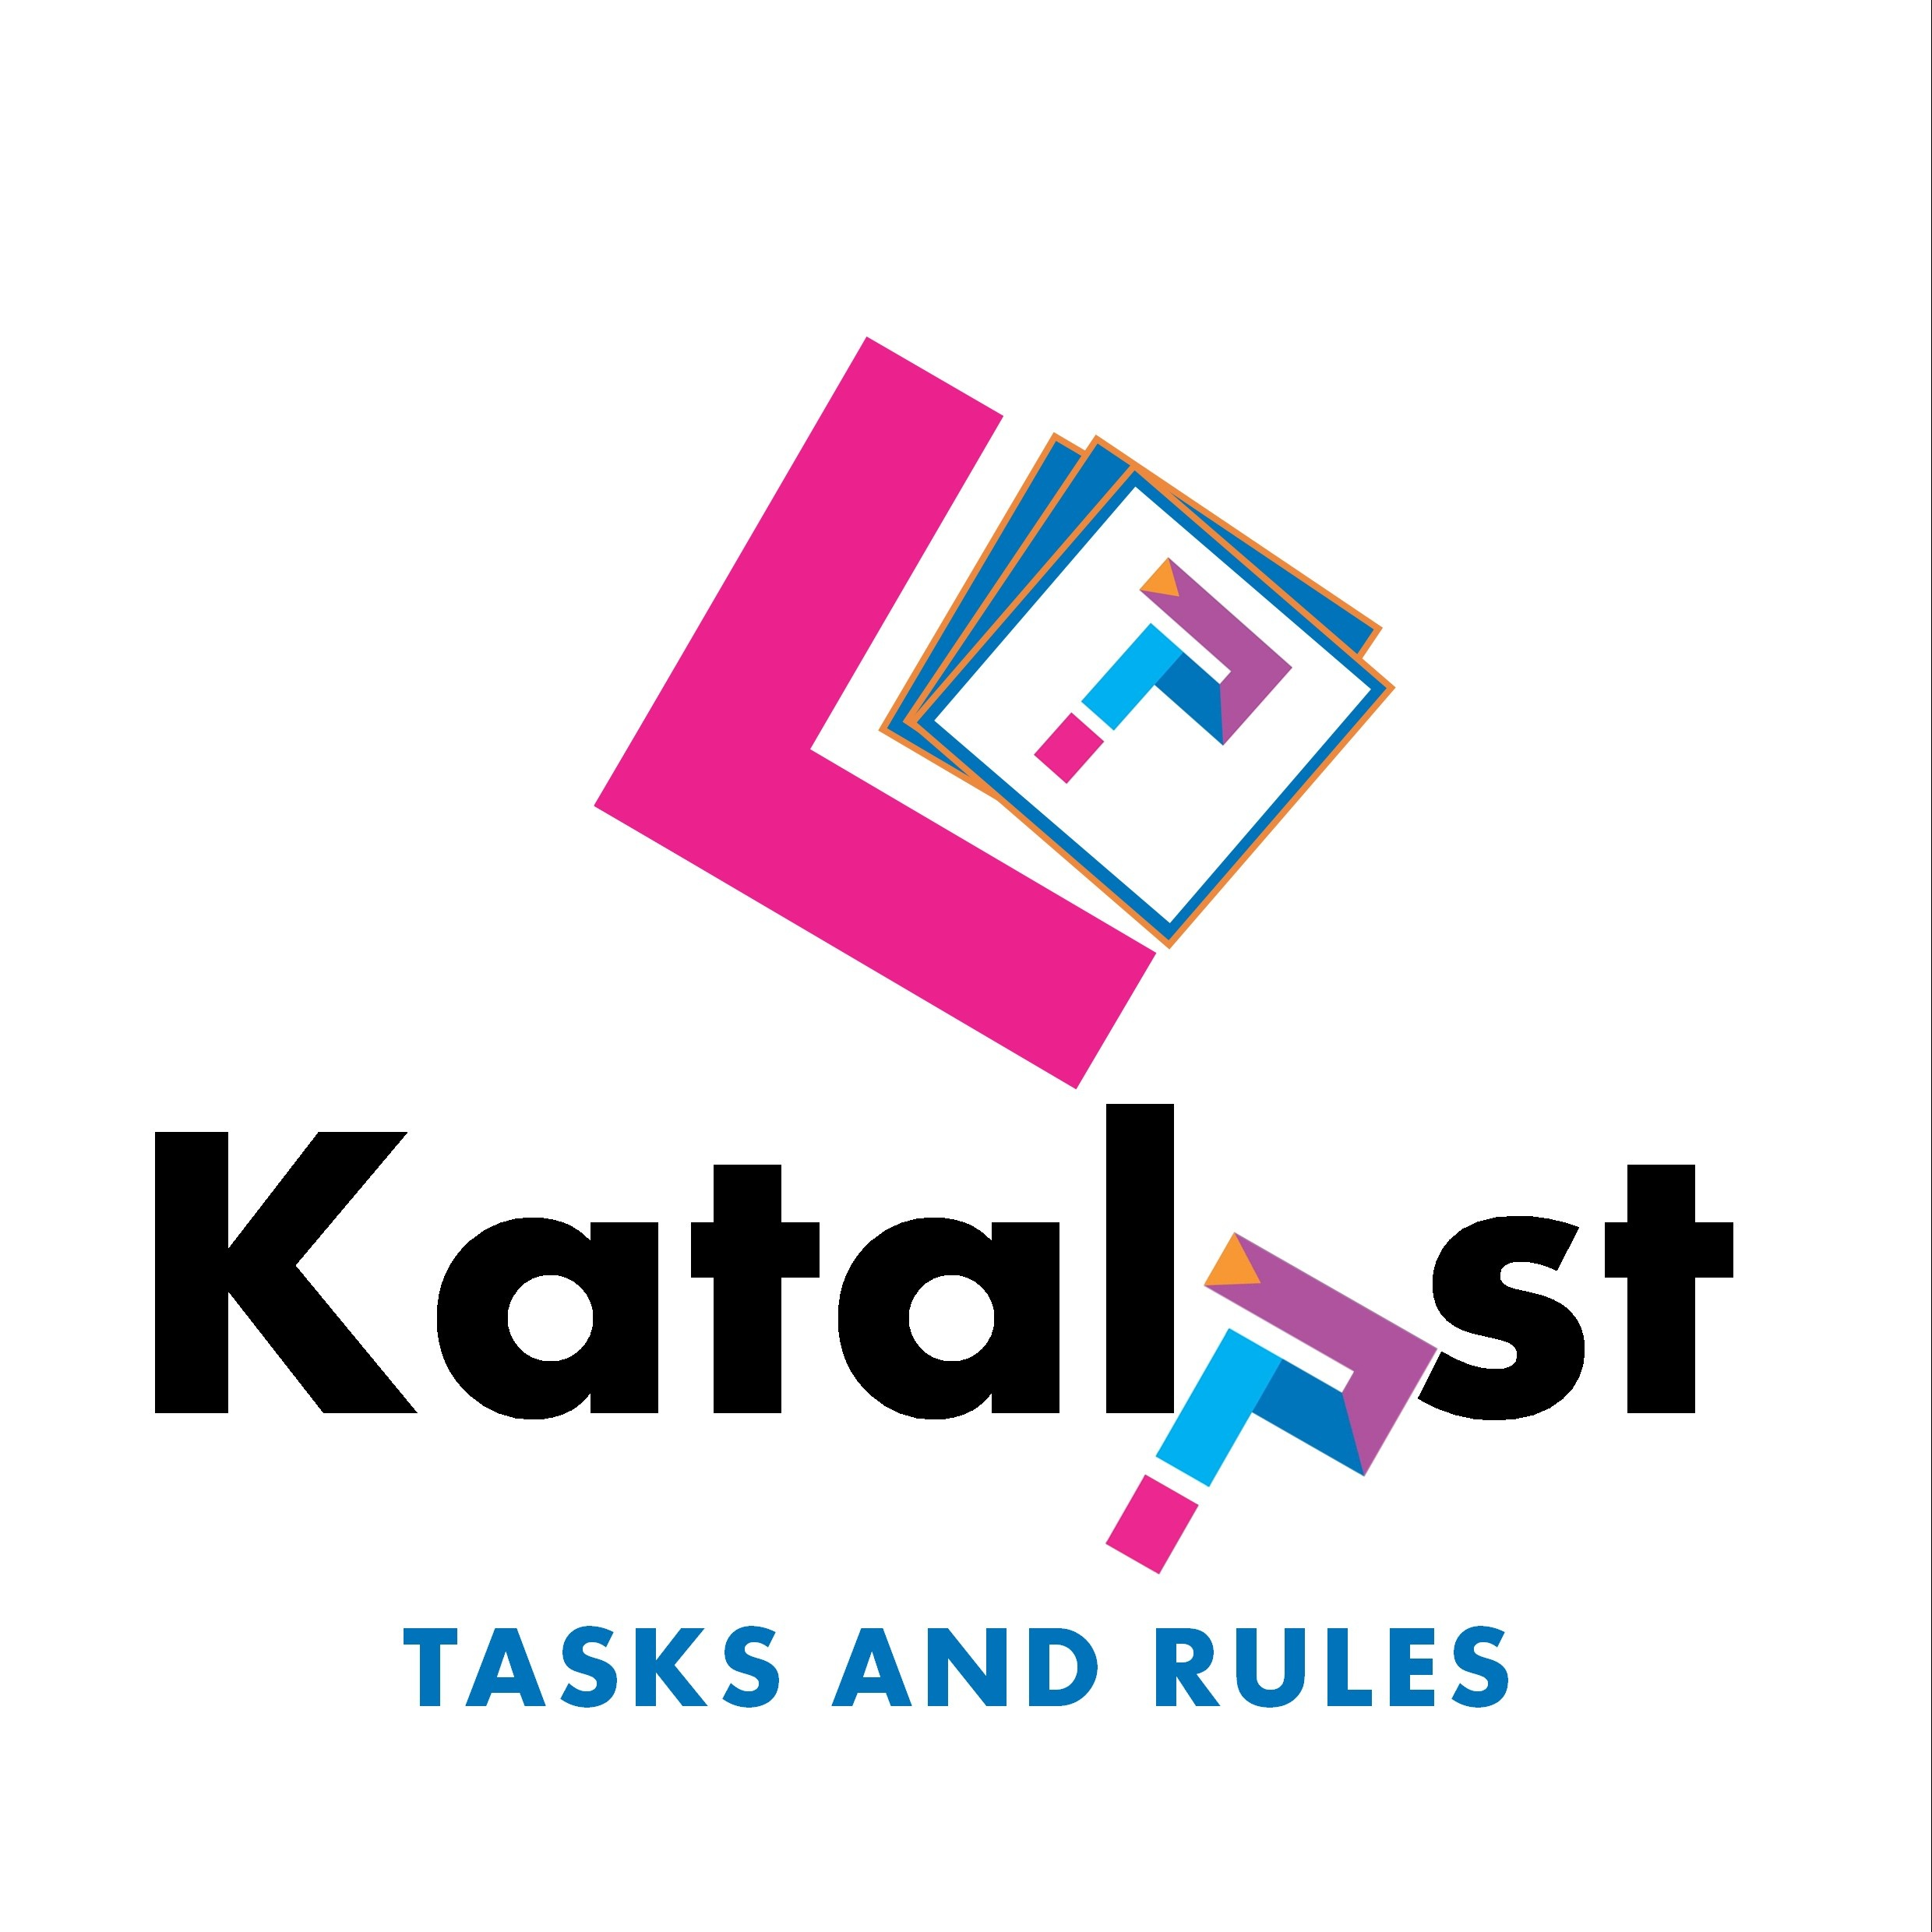 Tasks and Rules